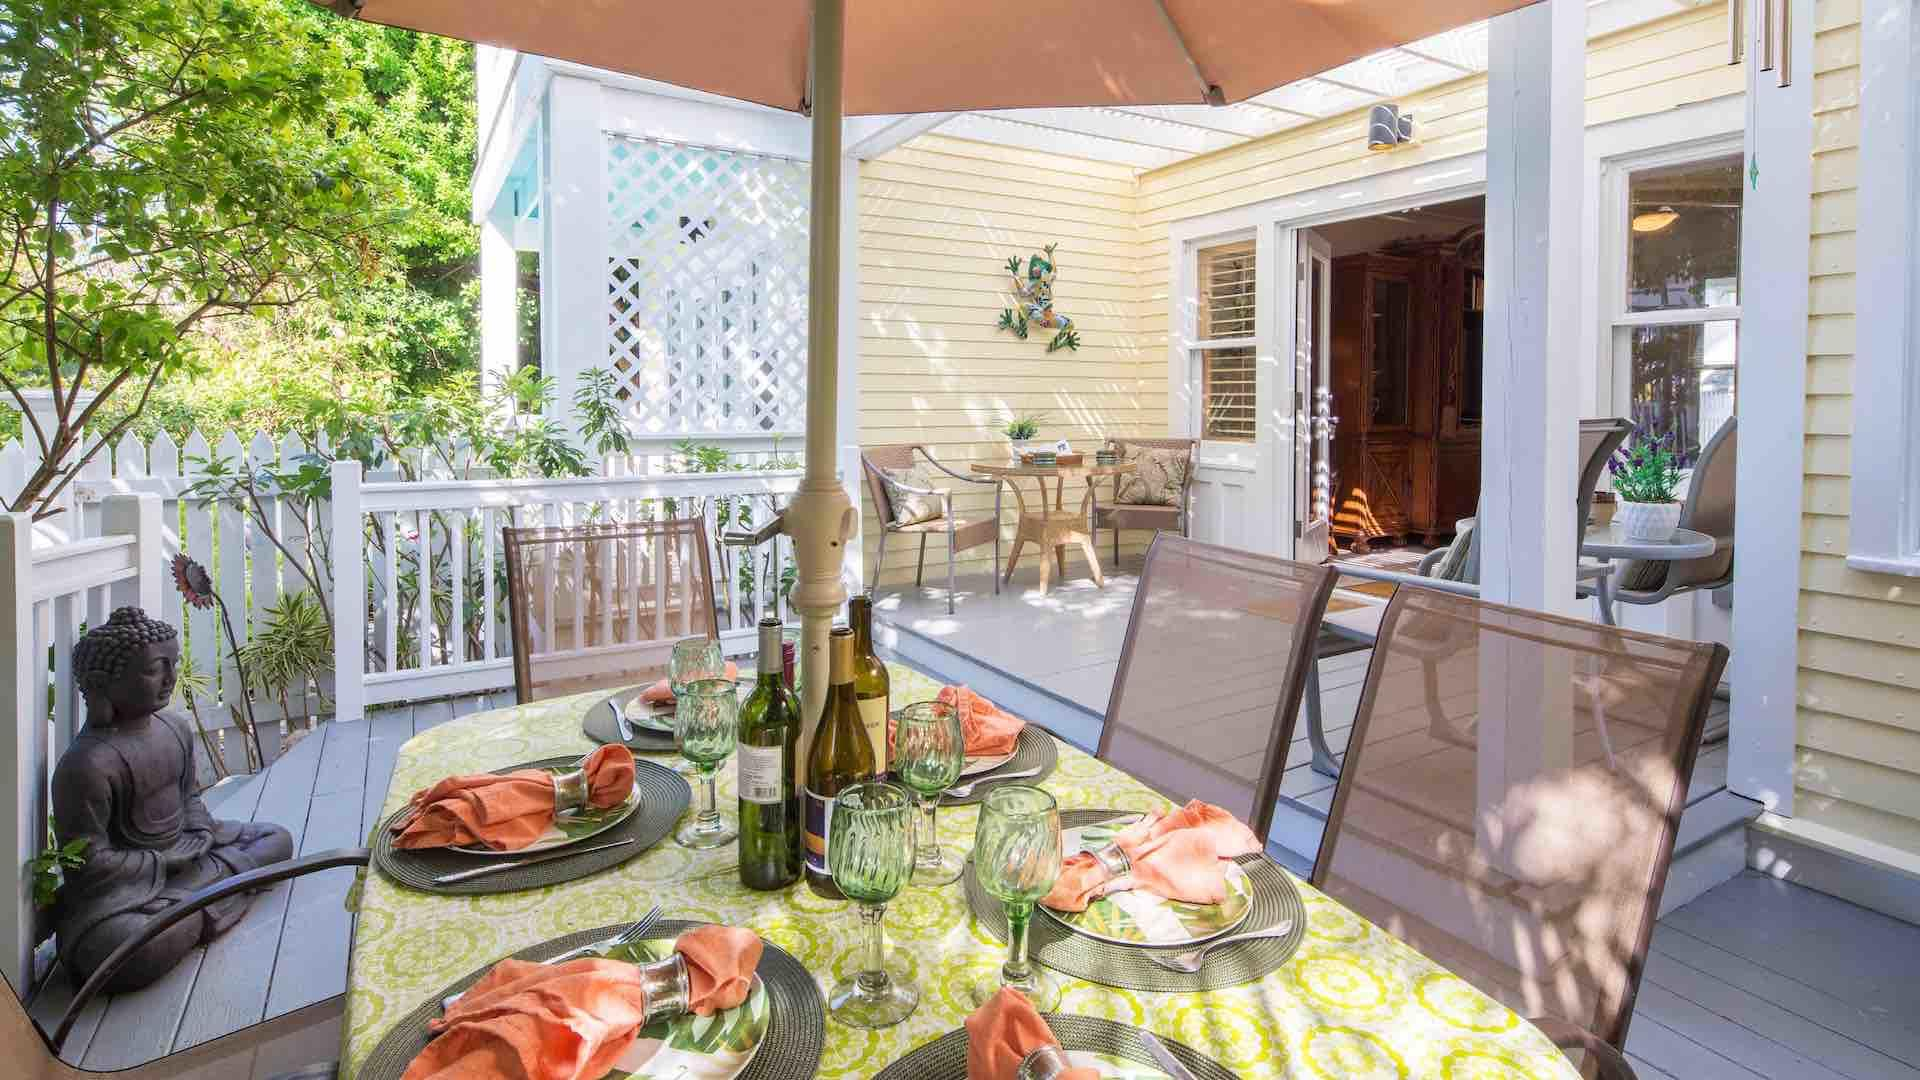 The outdoor dining area is the perfect place to enjoy a meal or have a BBQ...